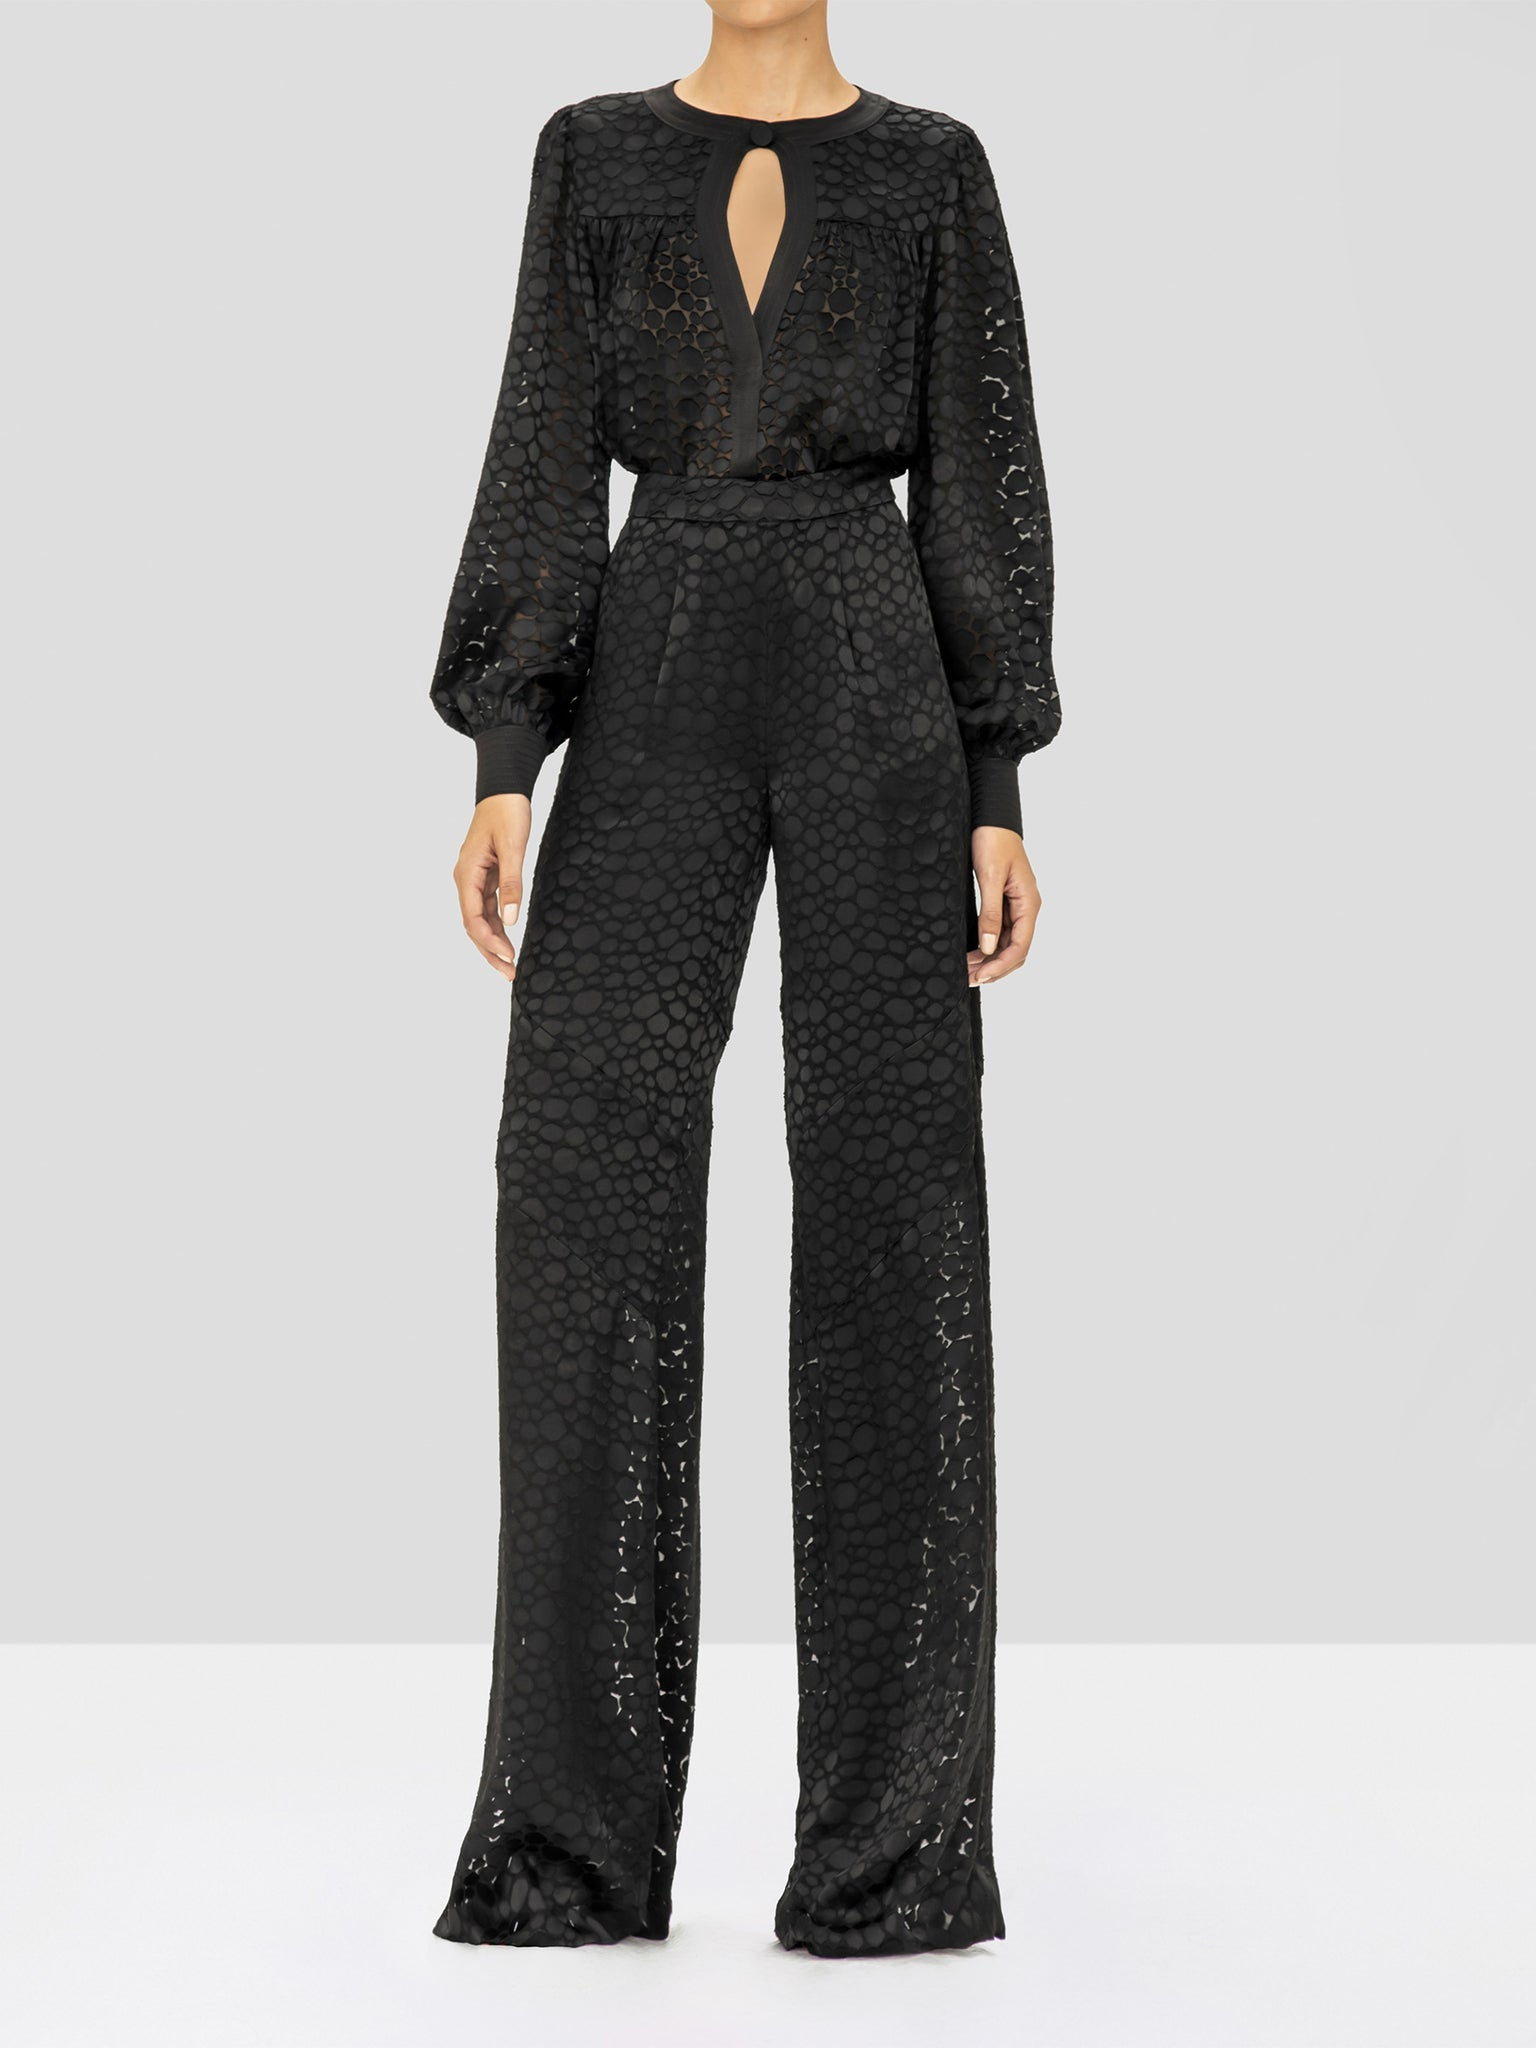 Alexis Galini Pant and Rhida Top in Black Geometric from the Holiday 2019 Ready To Wear Collection